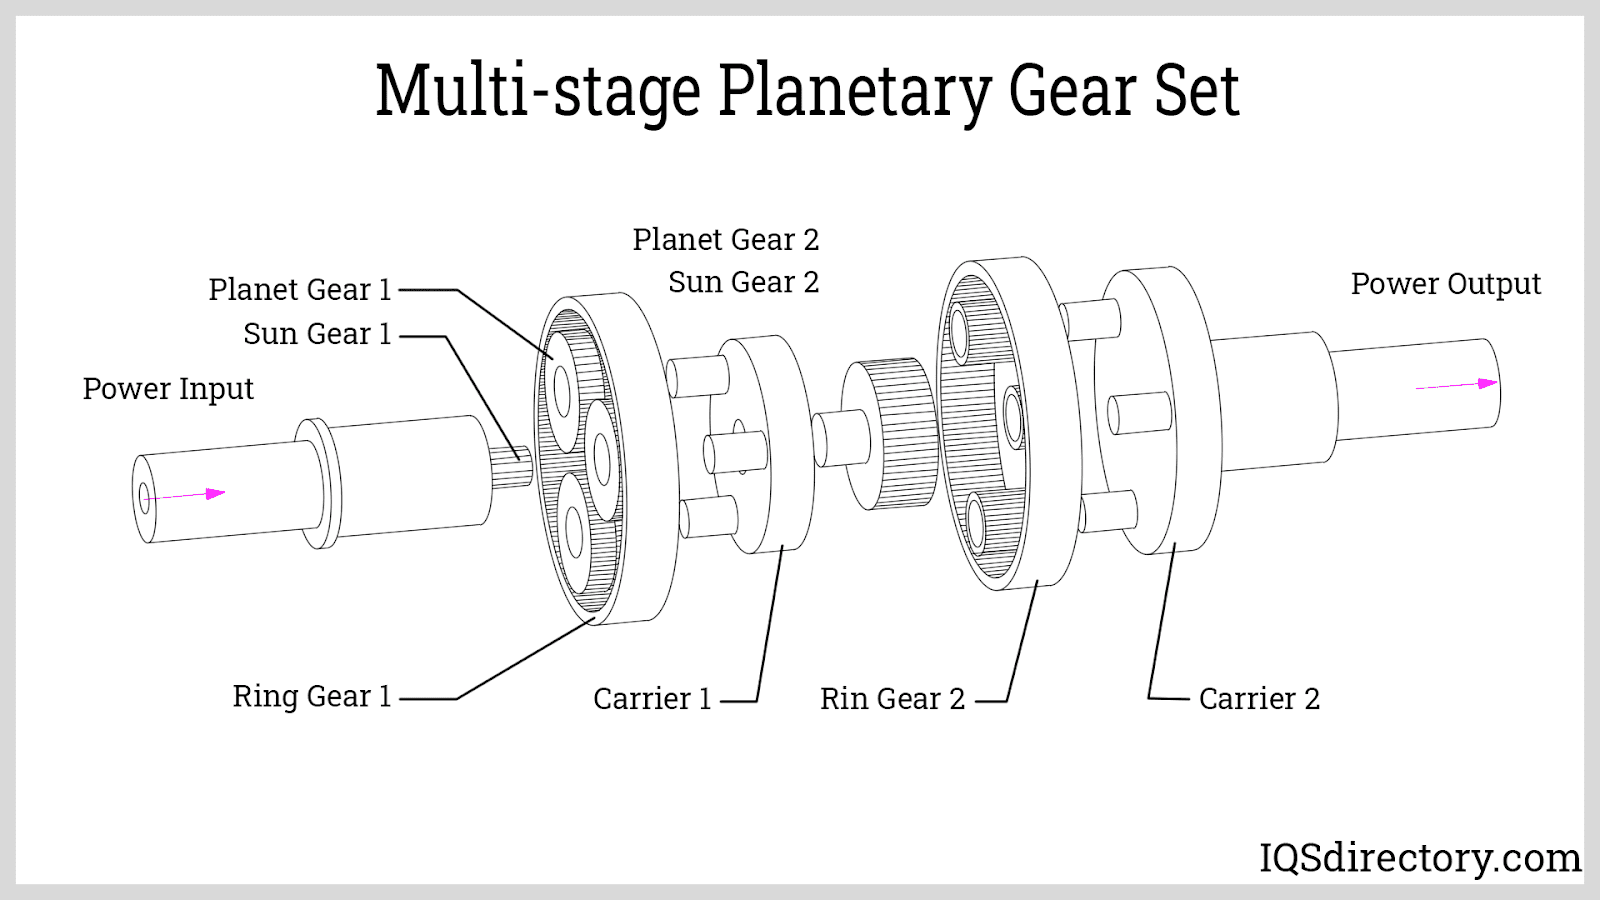 Multi-stage Planetary Gear Set